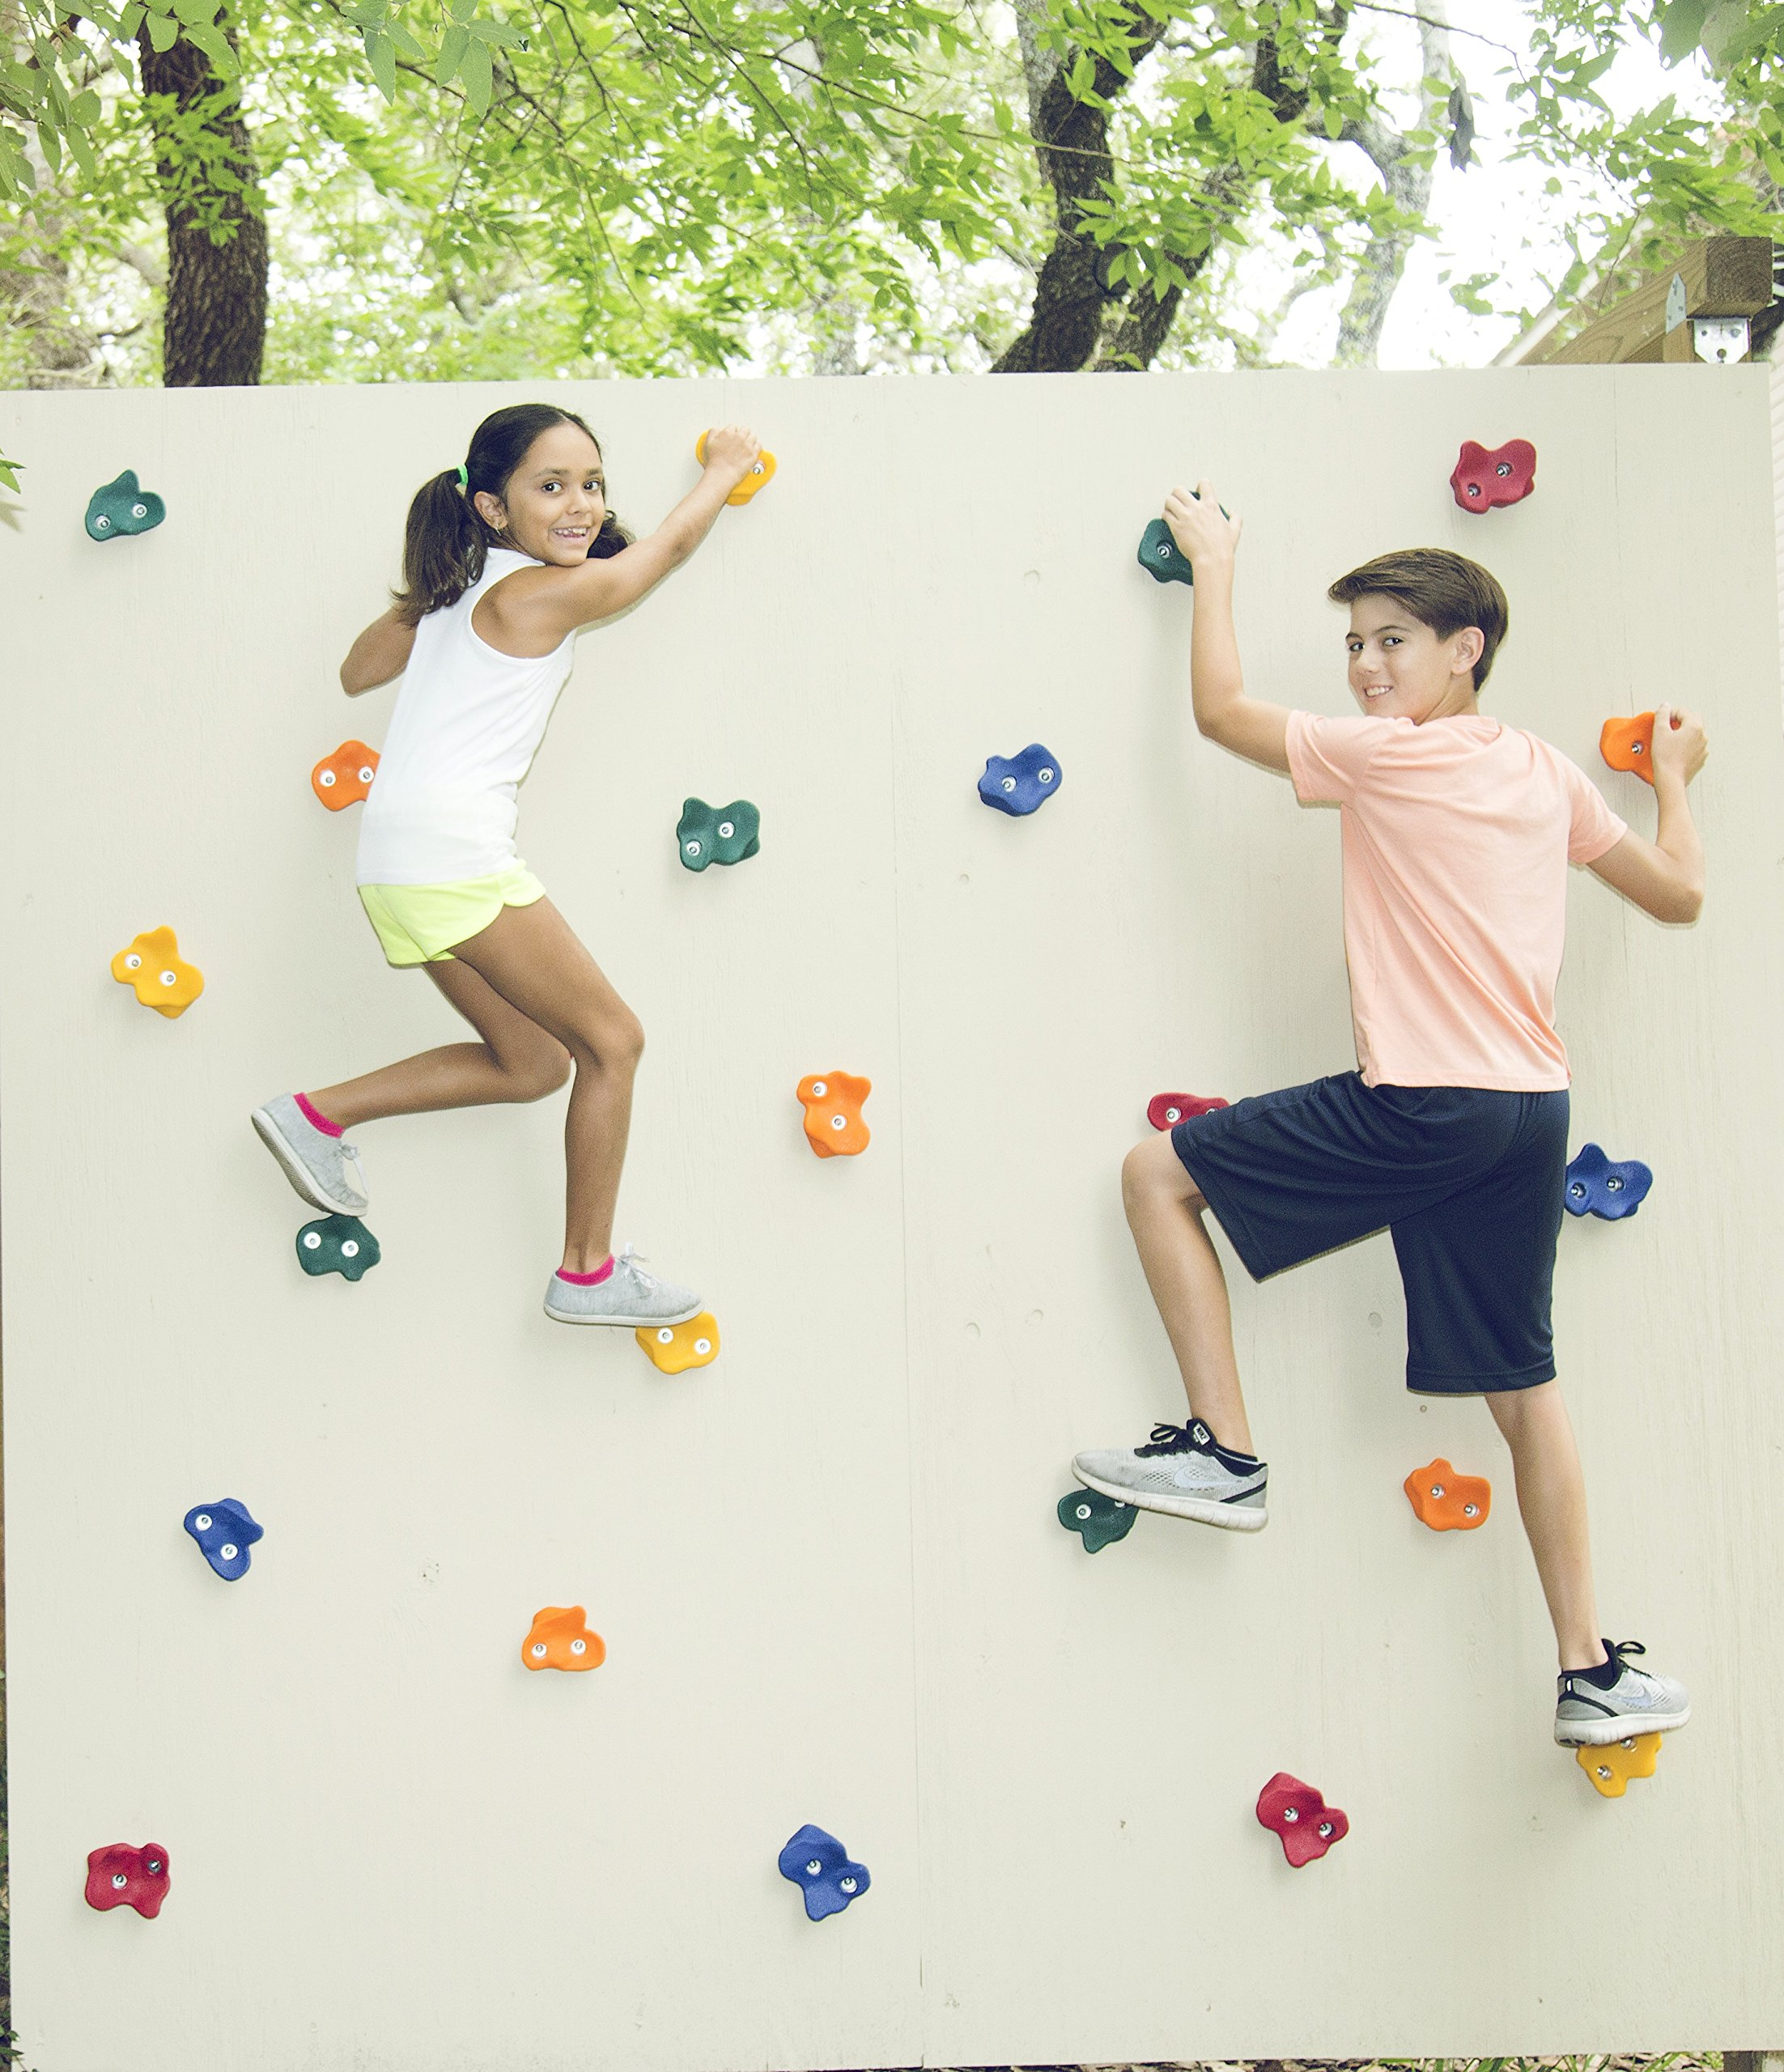 Jungle Gym Kingdom 22 Kids Extra Large Rock Climbing Holds for DIY Childrens Playground Wall | 2 Inch Mounting Hardware | Playset Install Guide by Jungle Gym Kingdom (Image #6)